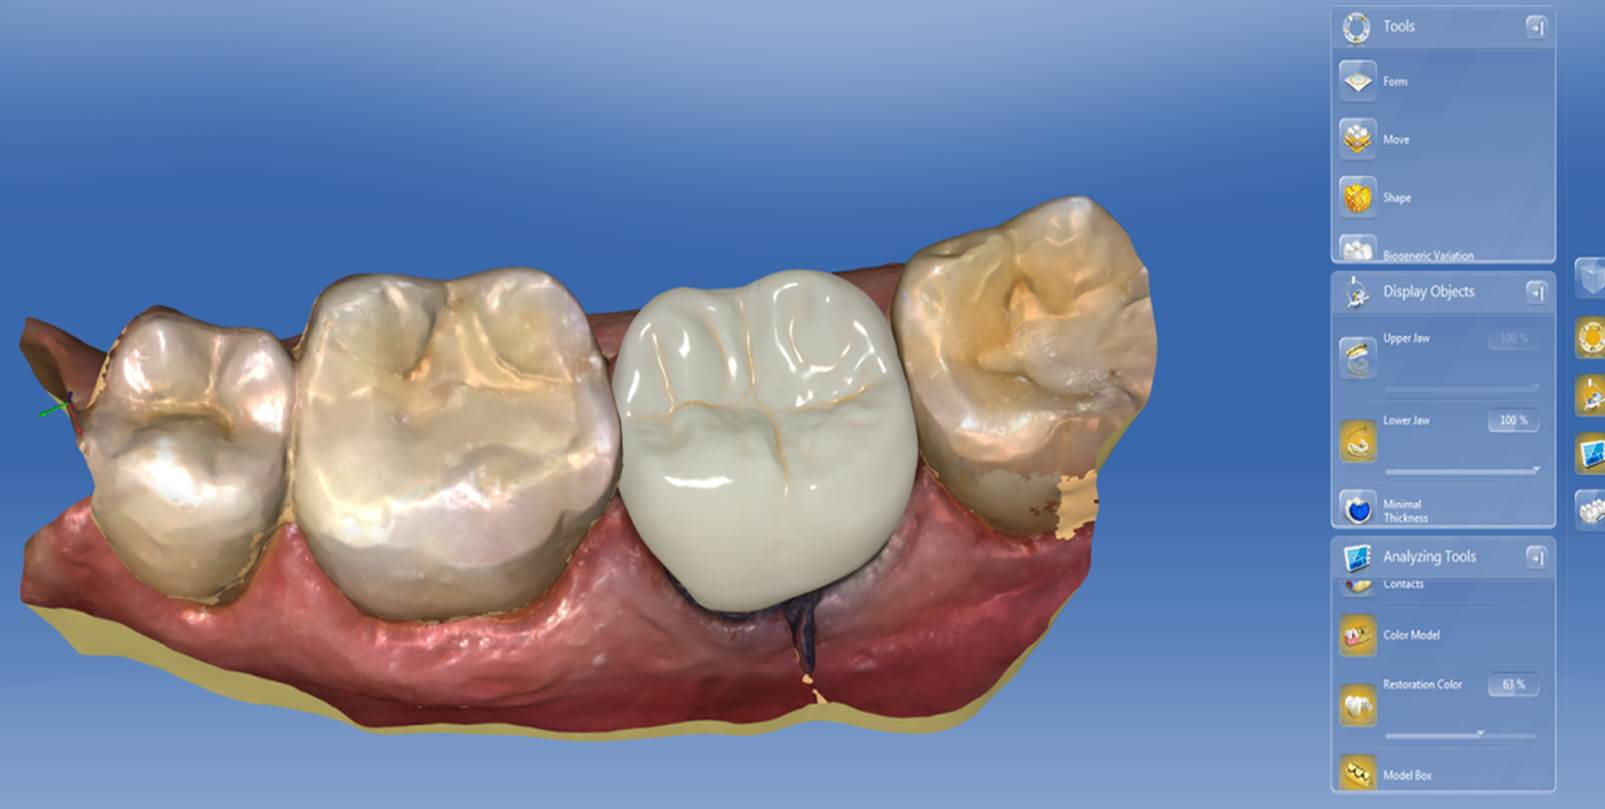 Cerec Sw 4 5 Intuitive Work Using Intelligent Software To